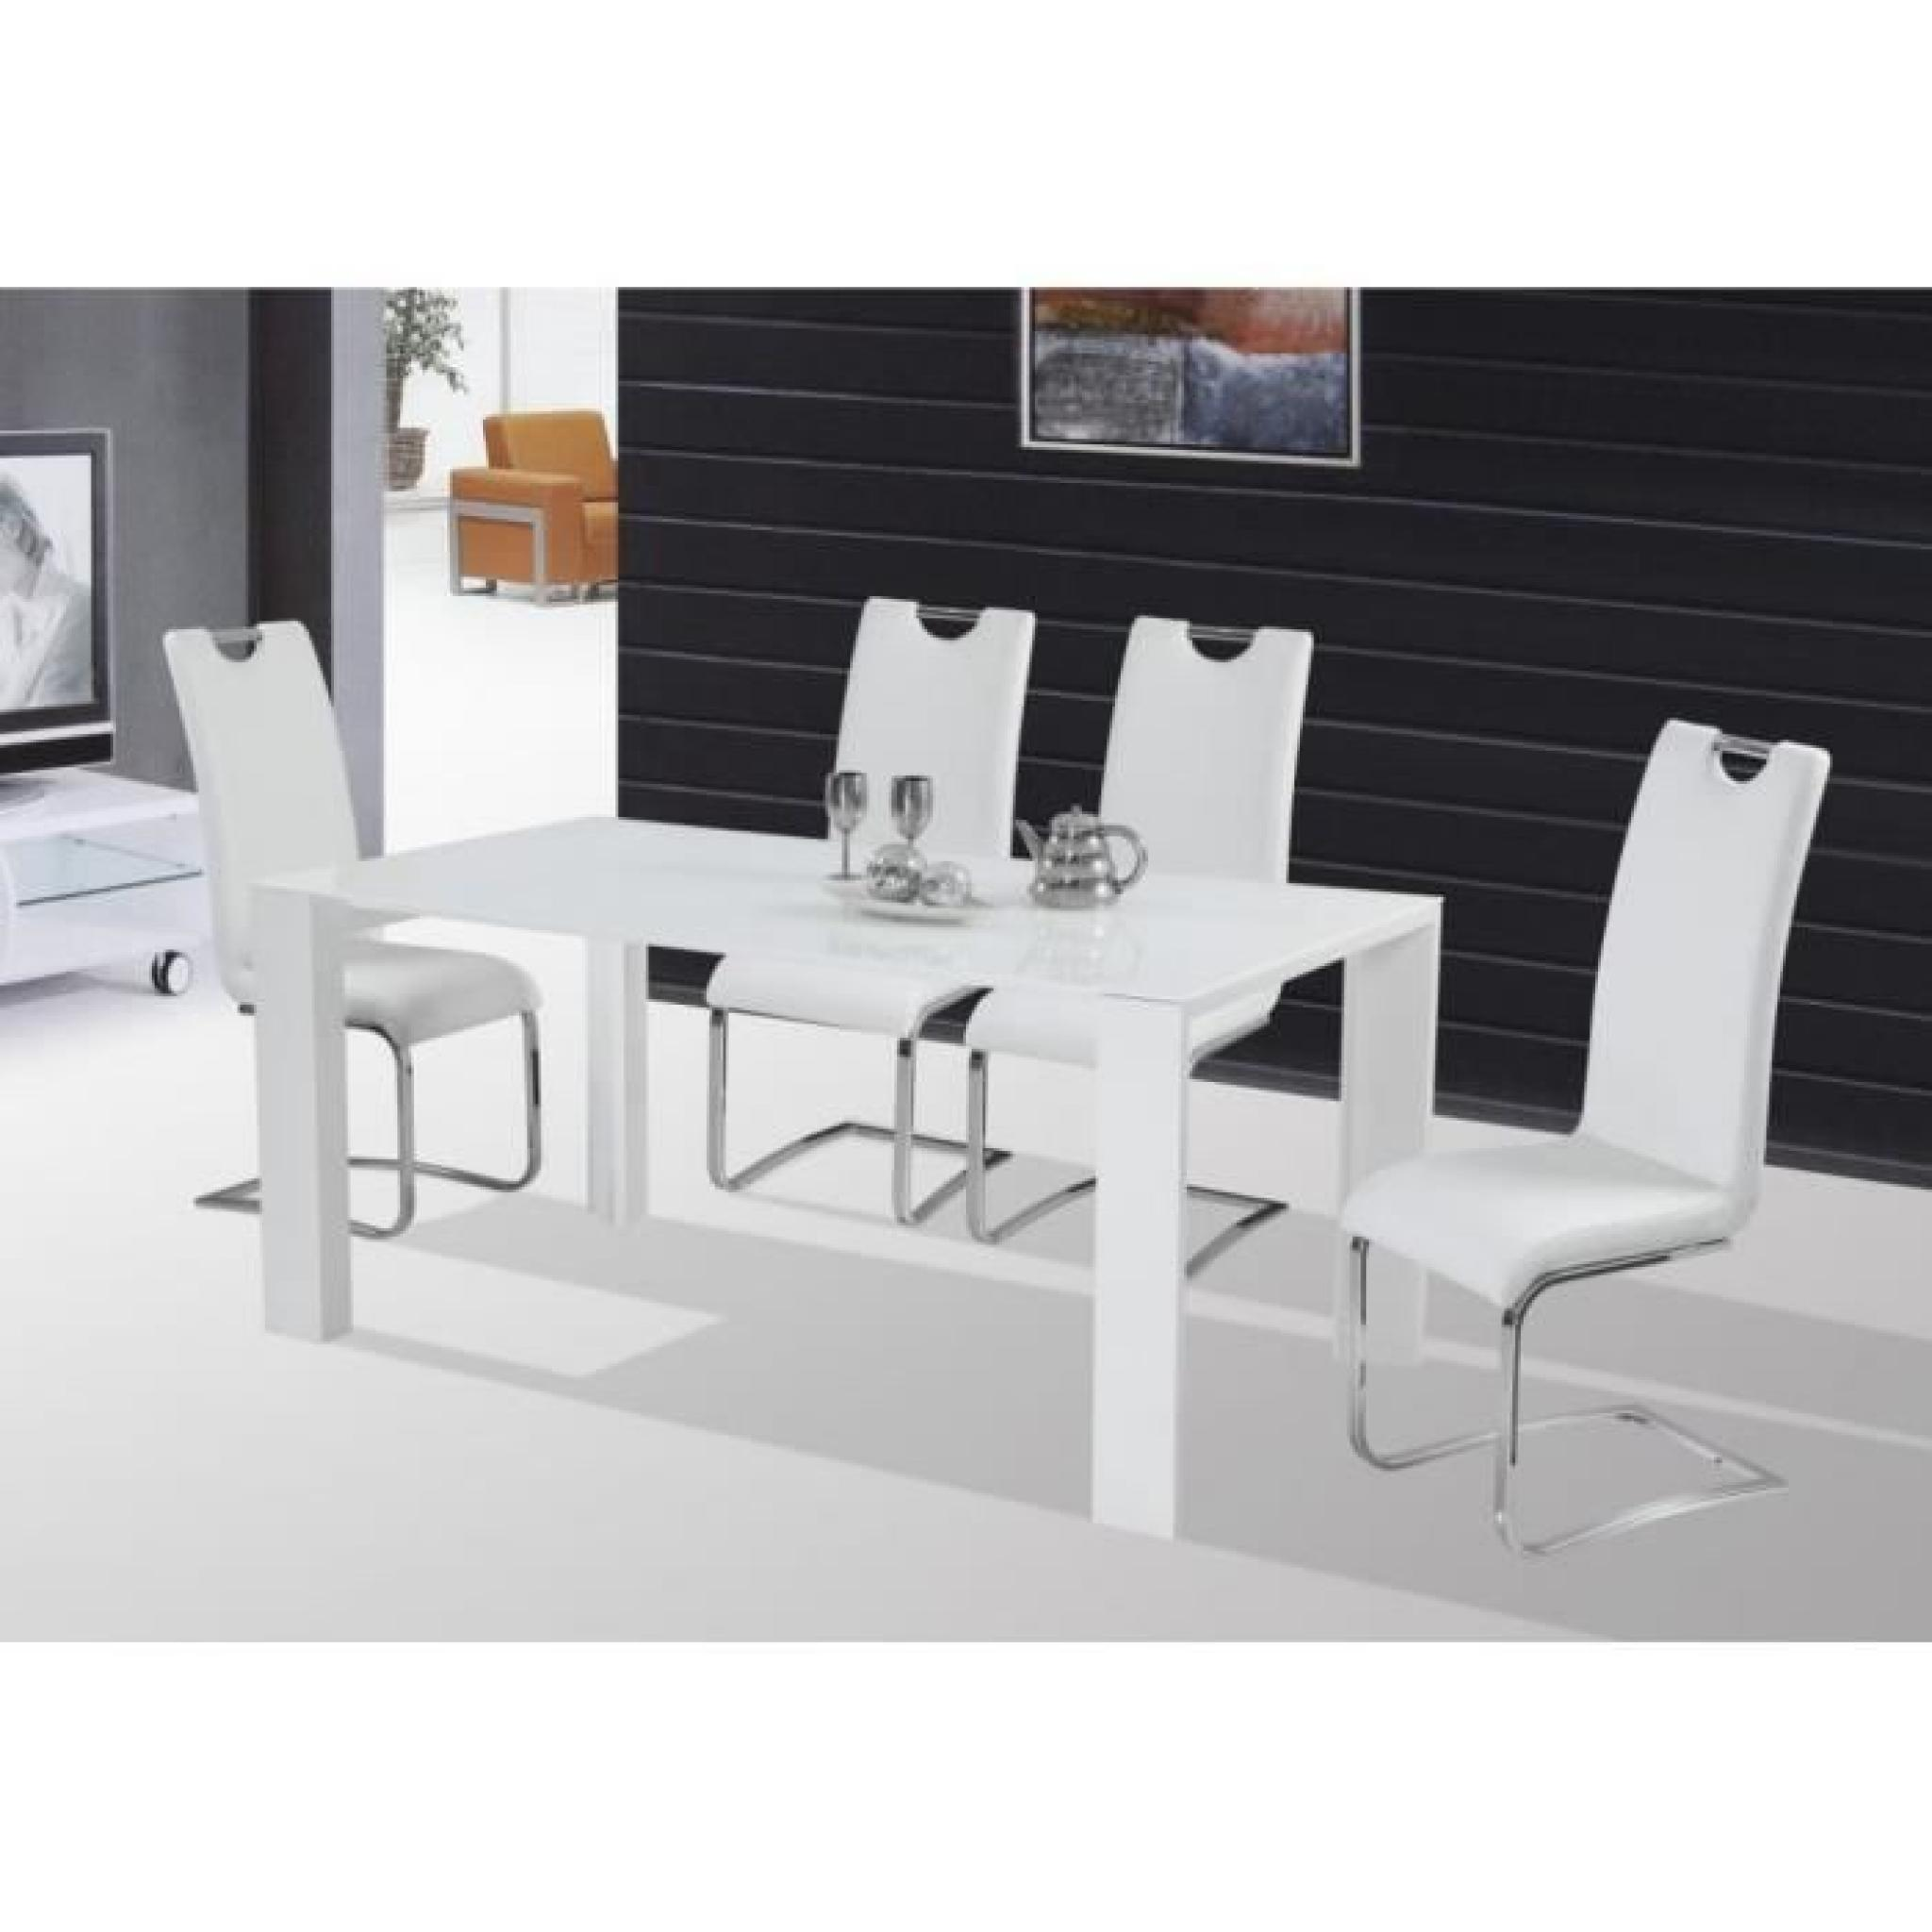 table salle a manger noir et blanc table salle a manger avec banc. Black Bedroom Furniture Sets. Home Design Ideas